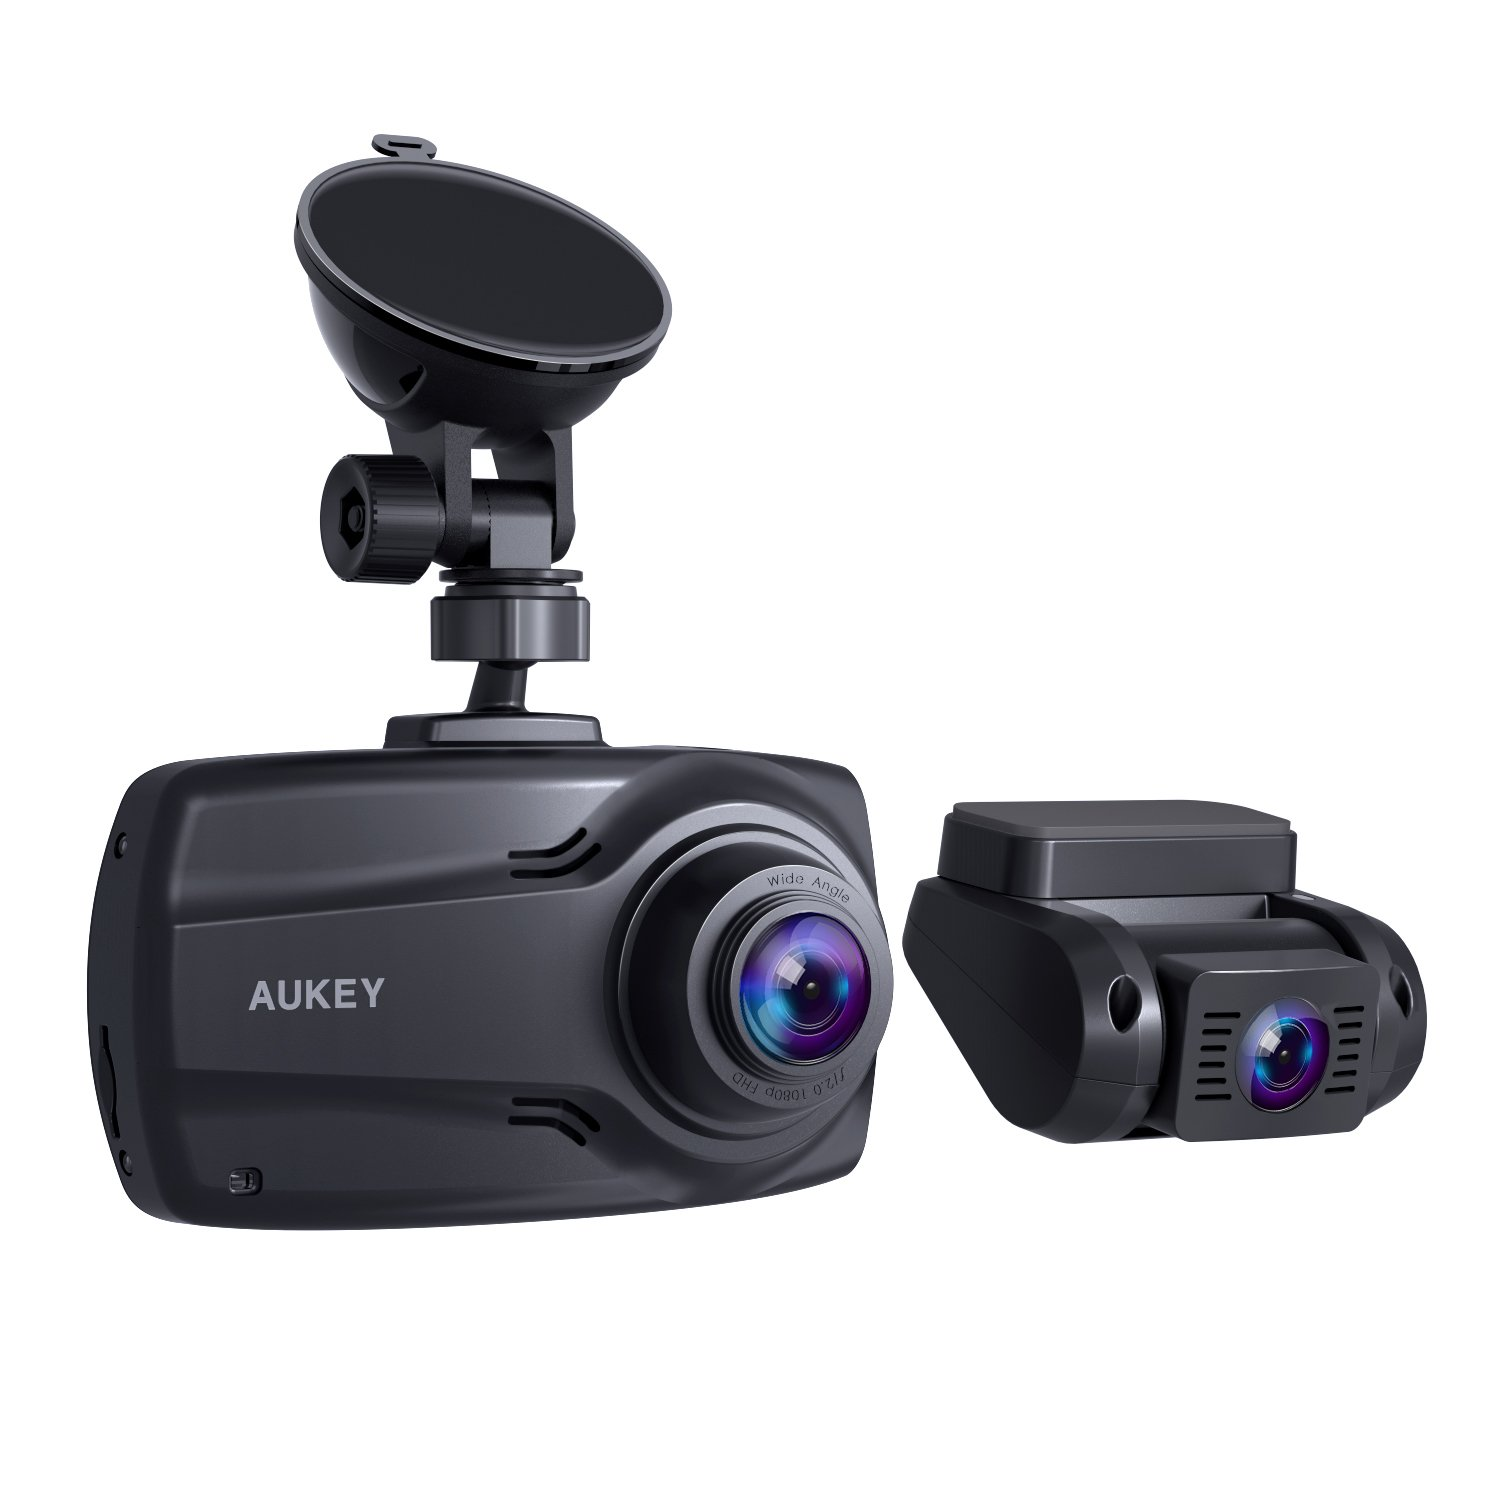 """AUKEY 1080p Dual Dash Cams with 2.7"""" Screen, Full HD Front and Rear Camera, 6-Lane 170° Wide-Angle Lens, G-Sensor, and Dual-Port Car Charger"""